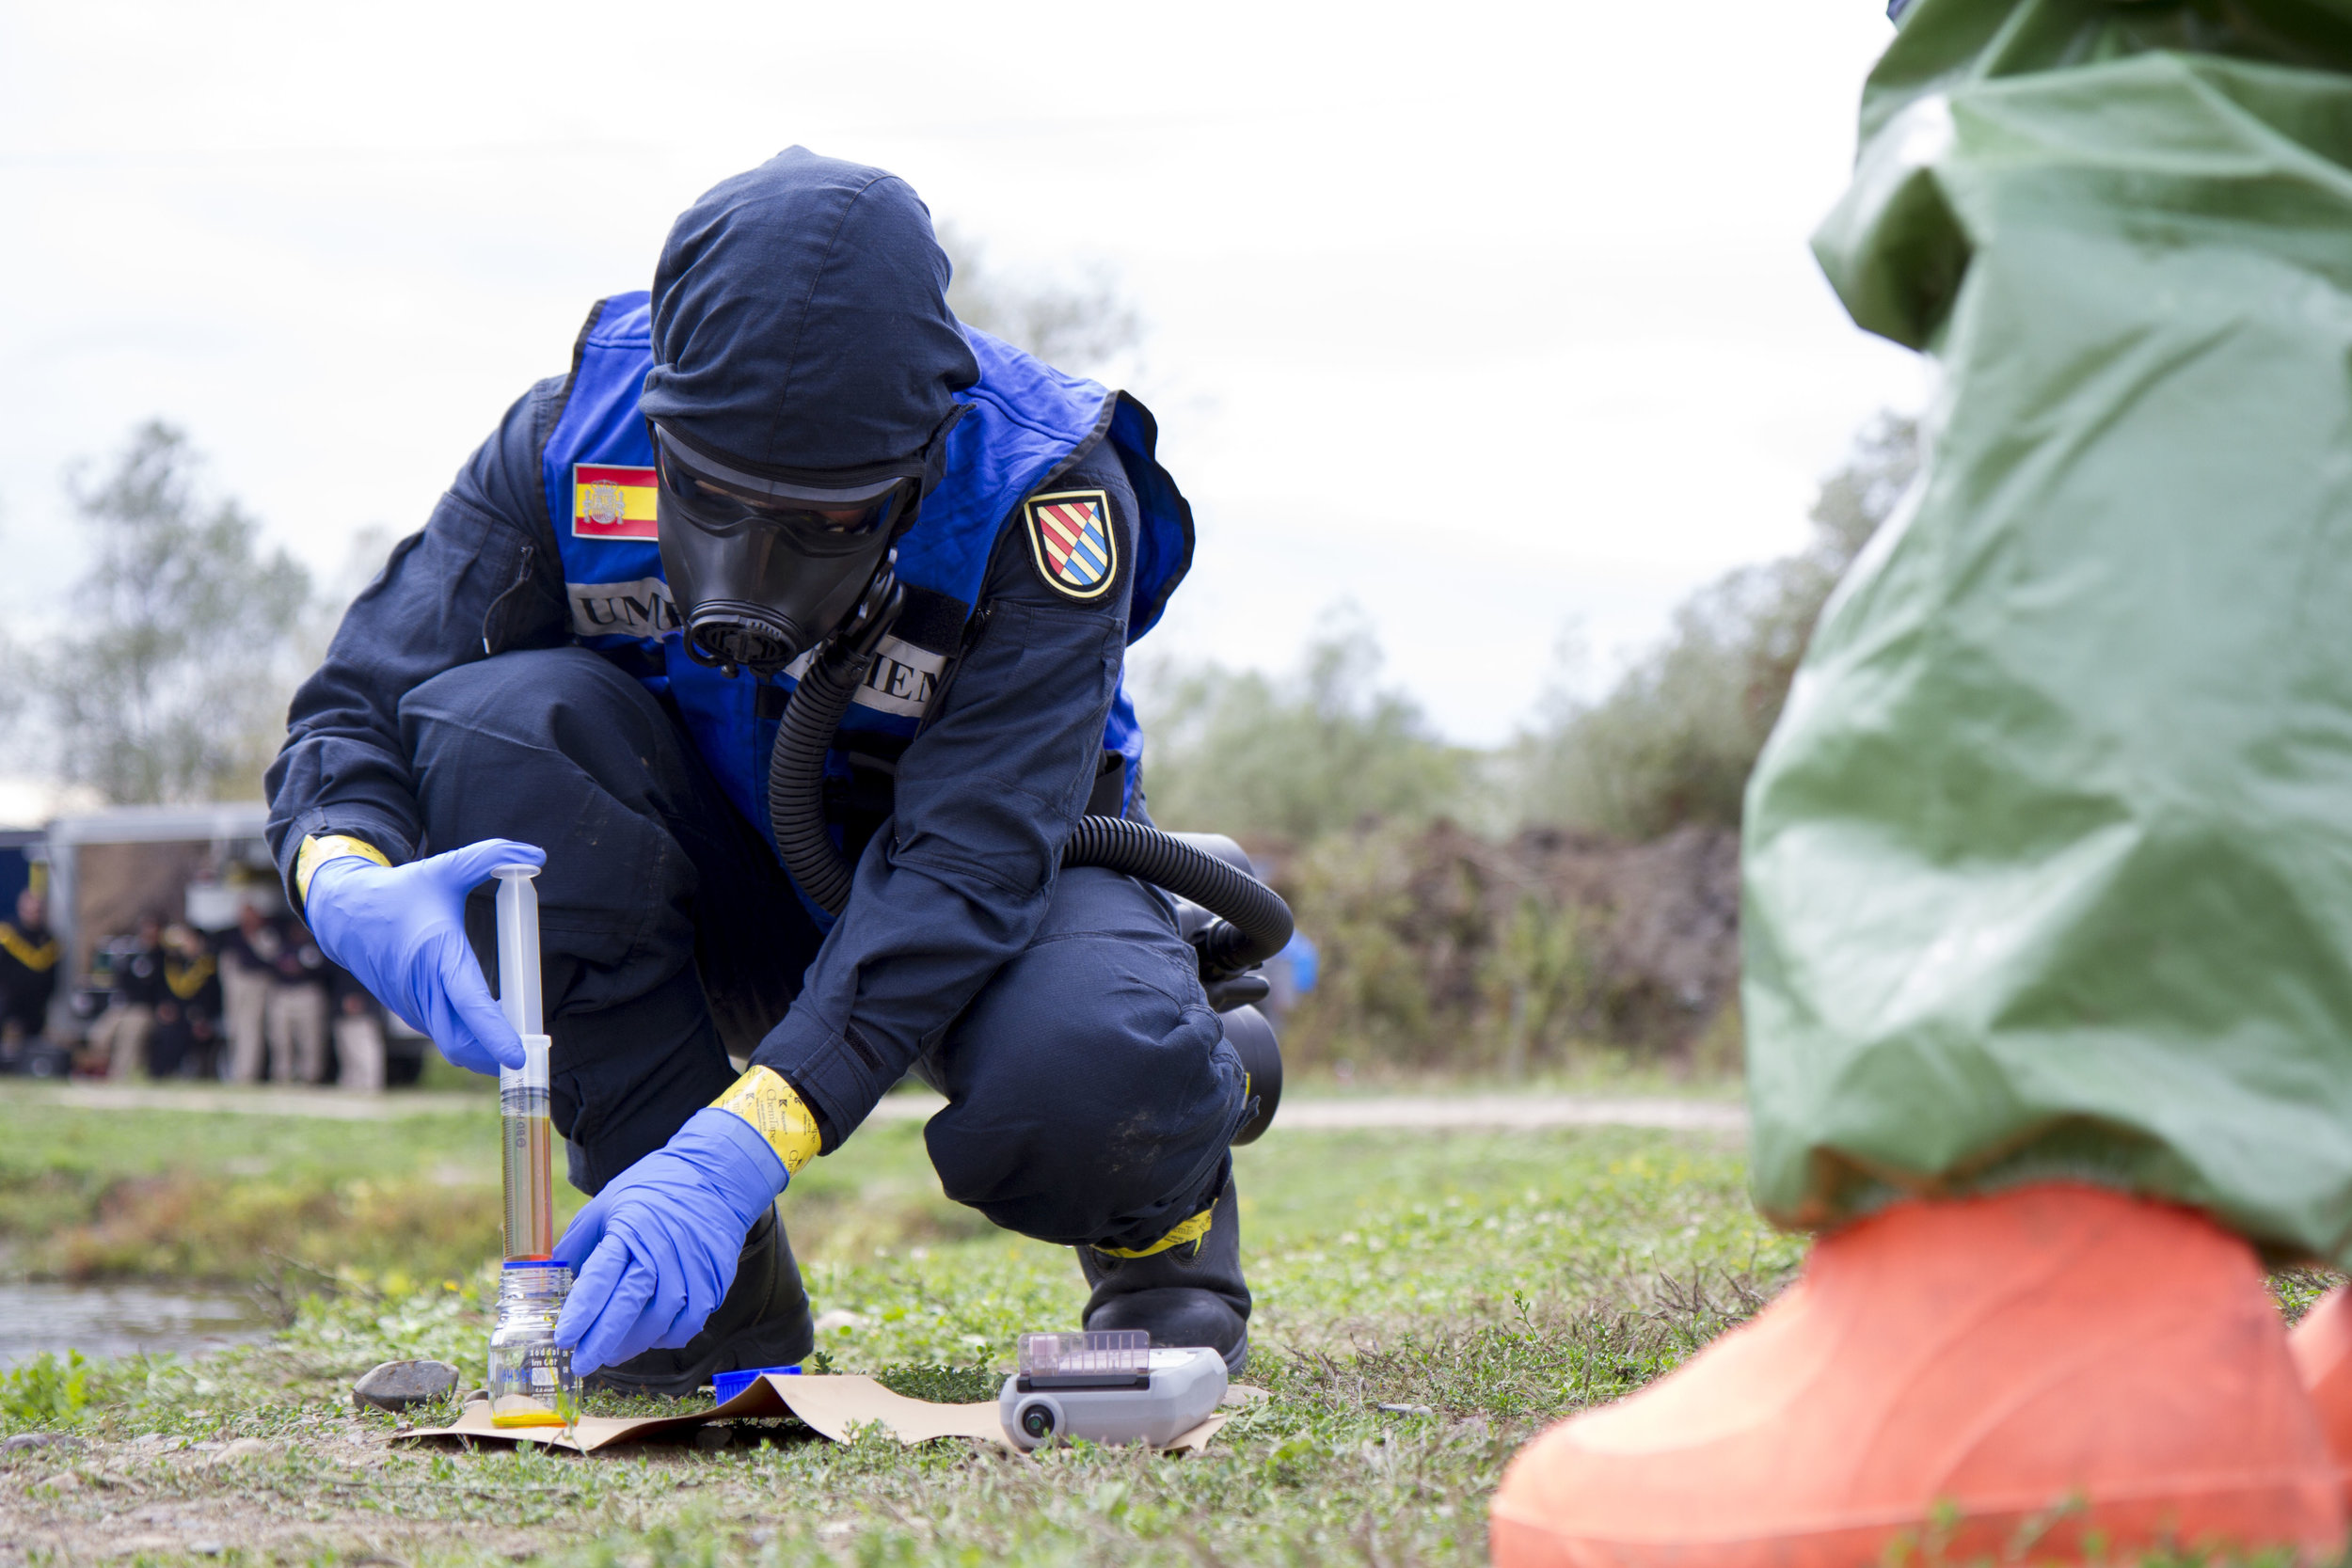 """Maline, Bosnia-Herzegovina (27 September 2017): A Spanish CBRN Specialist conducts field sampling and testing during a chemical spill training event at the Euro-Atlantic Disaster Response Coordination Centre (EADRCC) """"Bosnia-Hercegovina 2017"""" consequence management exercise. Note the APR with PAPR and impregnated suit with nitrile gloves, a slightly modified Level C/MOPP 4. (Source: DVIDSHub.net, Public Domain, US Army Reserve Photo taken by Major Jeku Arce, 221st Public Affairs Detachment)"""